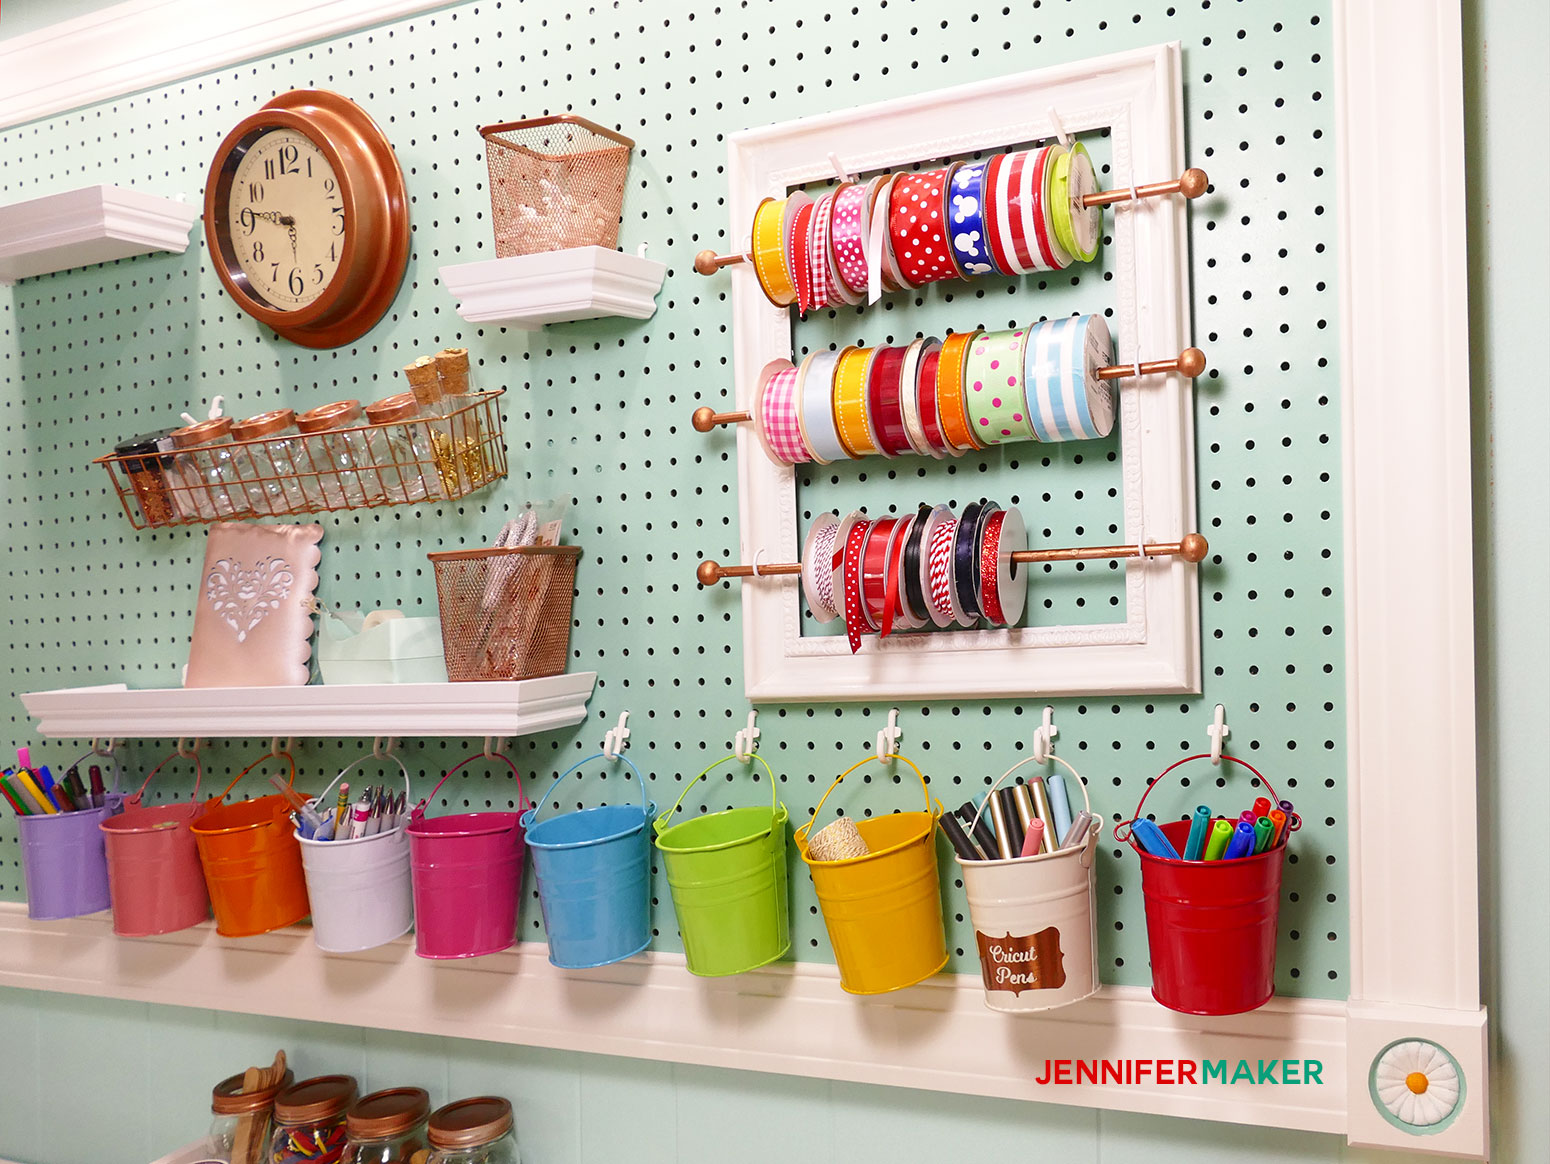 DIY Ribbon Organizer And Storage Frame For Your Organized Craft Room! |  #craftroom #